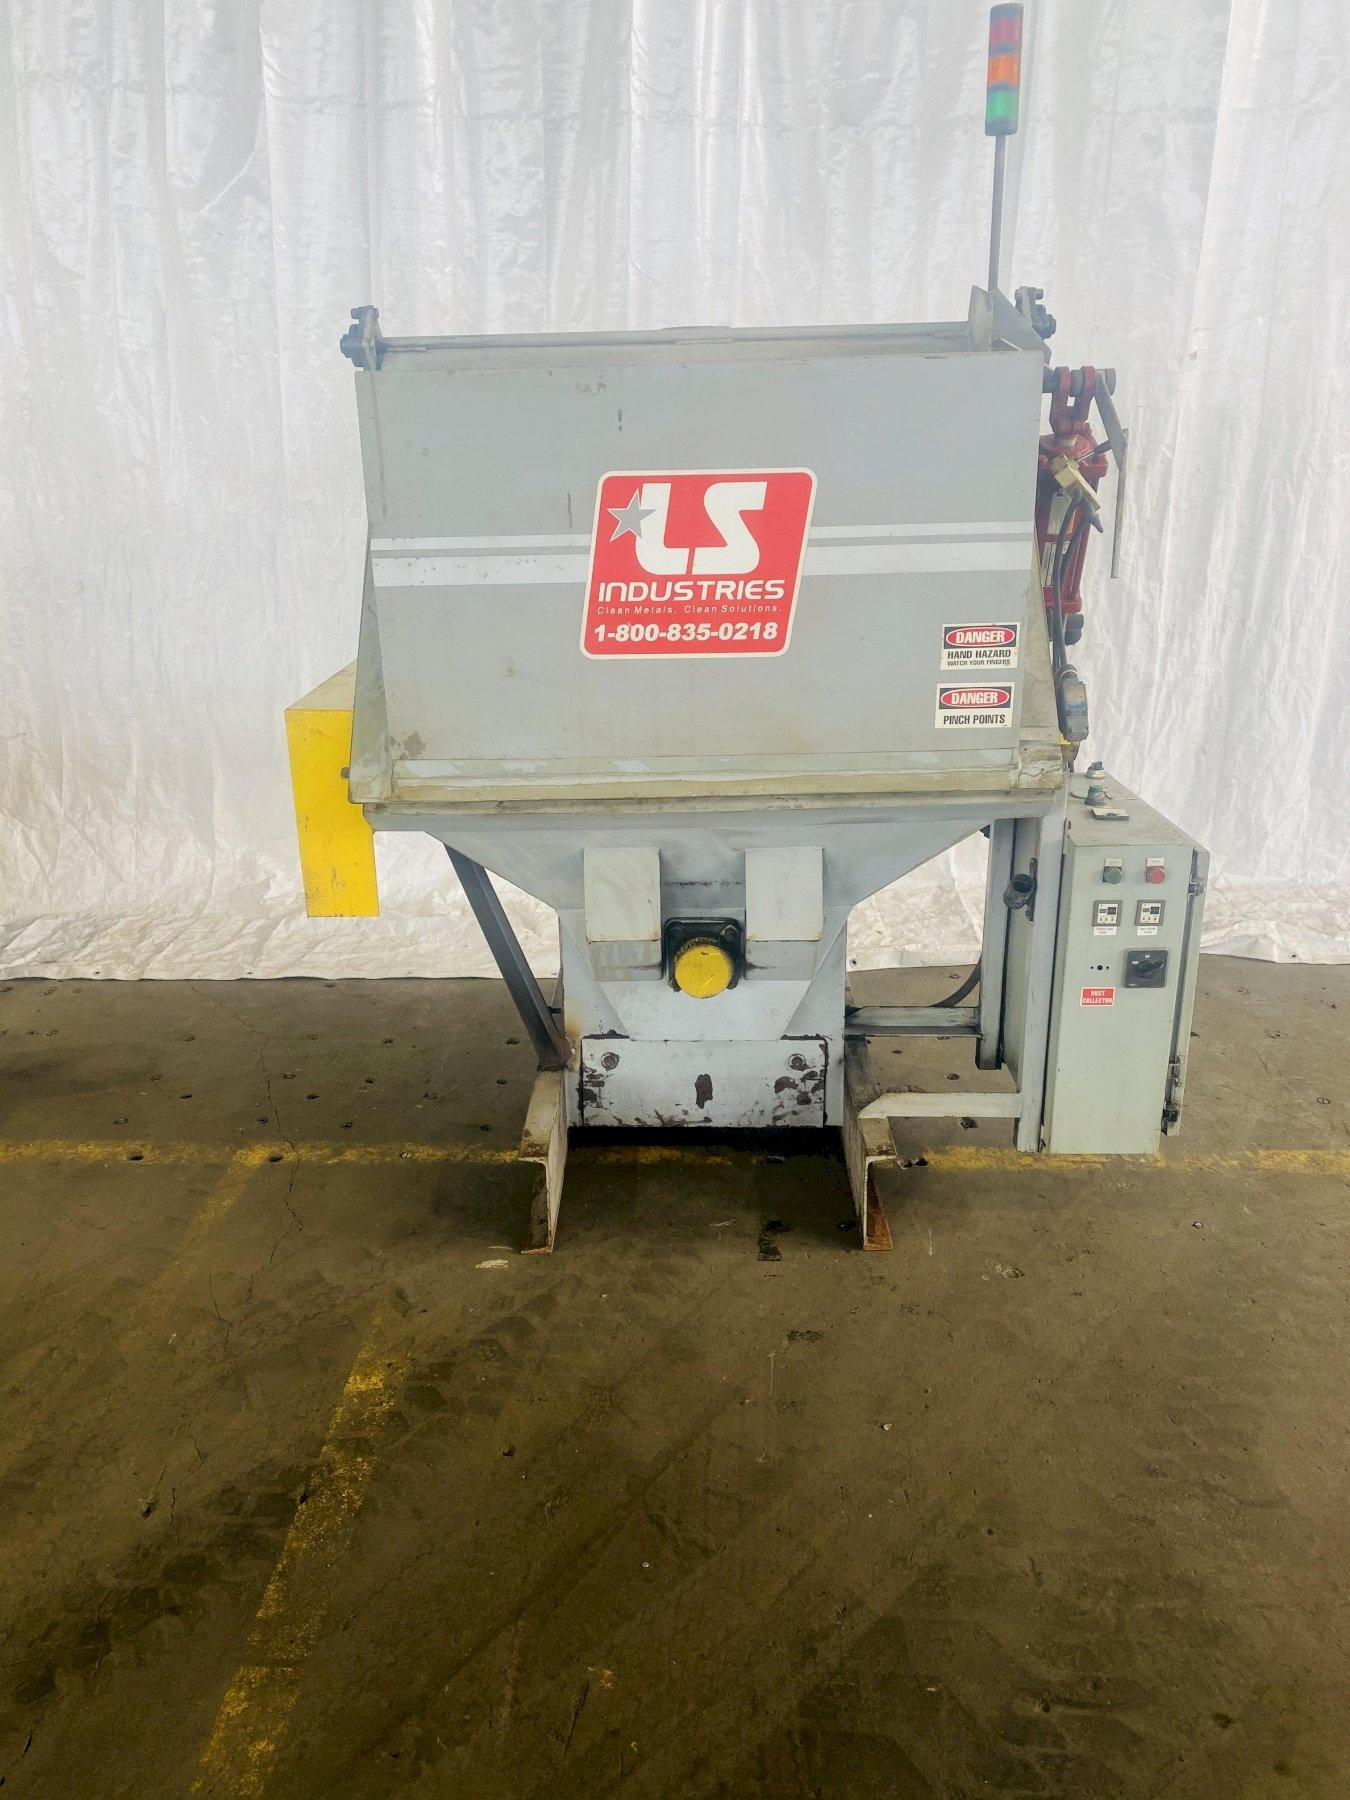 LS INDUSTIRES TUMBLE TYPE SHOT BLAST MACHINE. STOCK # 0406020